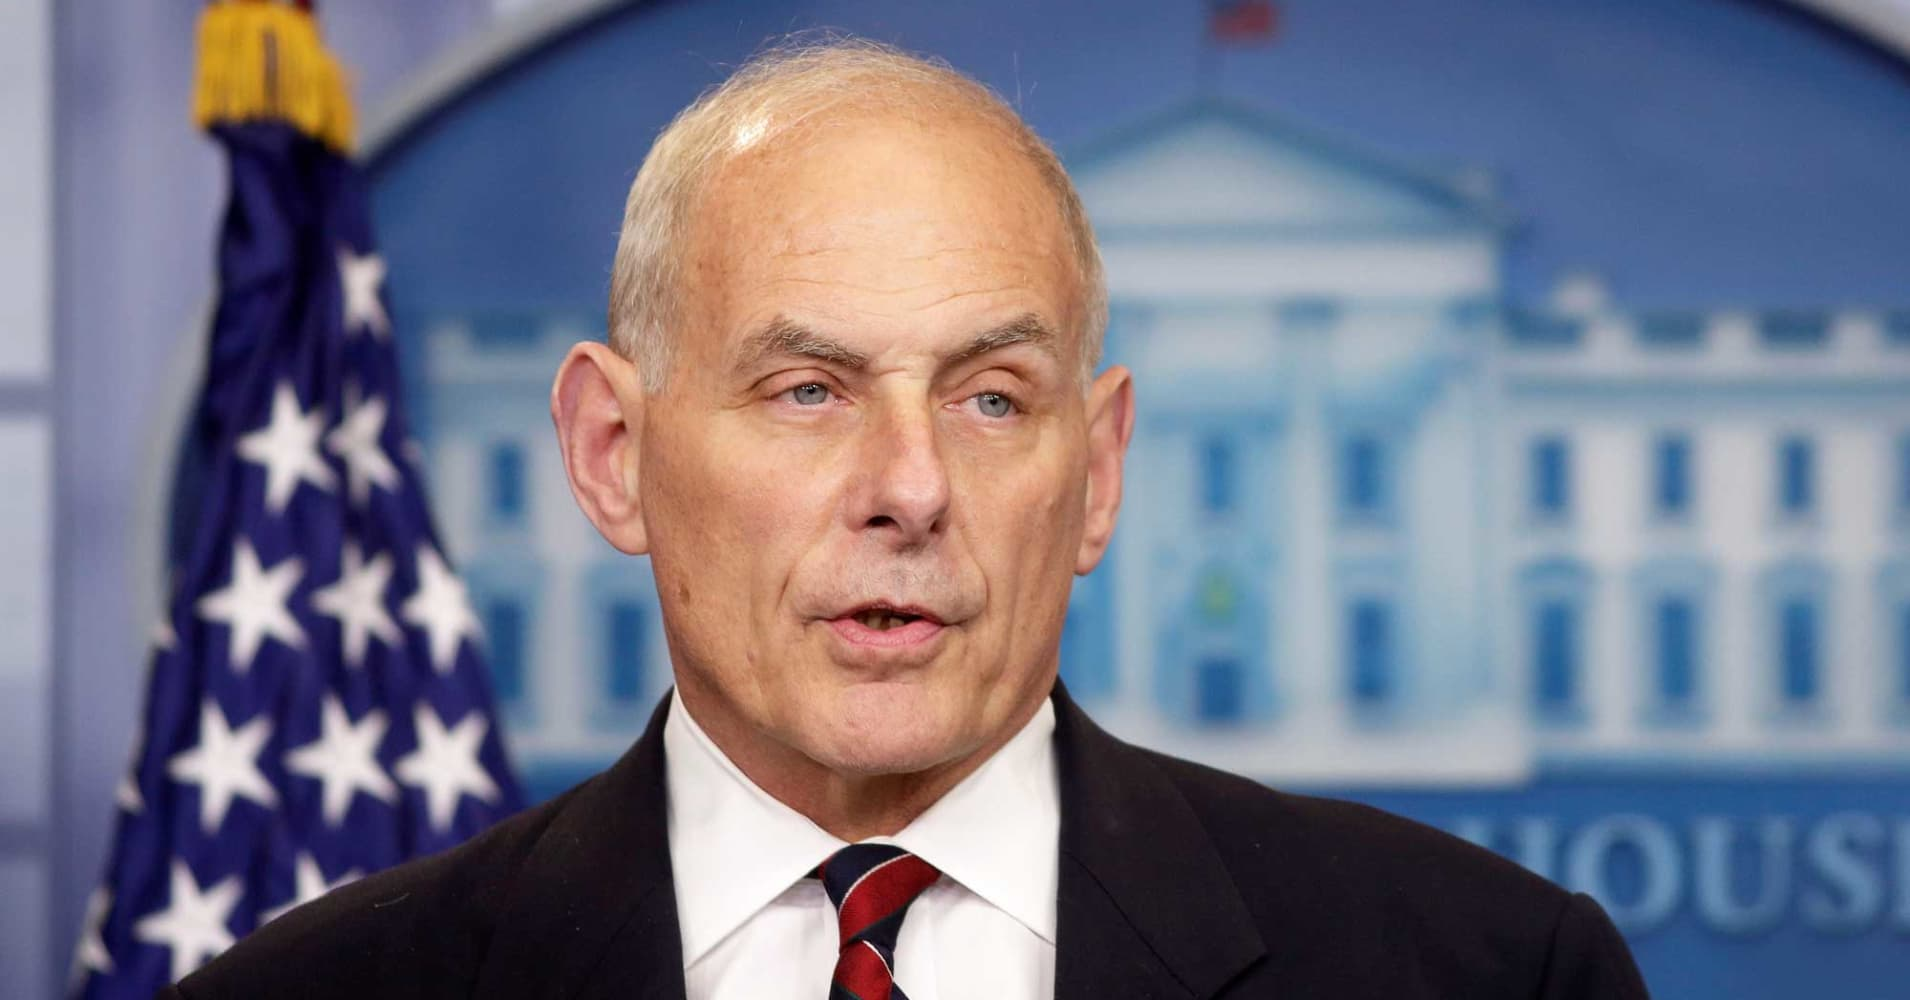 DHS chief Kelly asks for criminal histories of thousands of Haitians seeking to stay in US